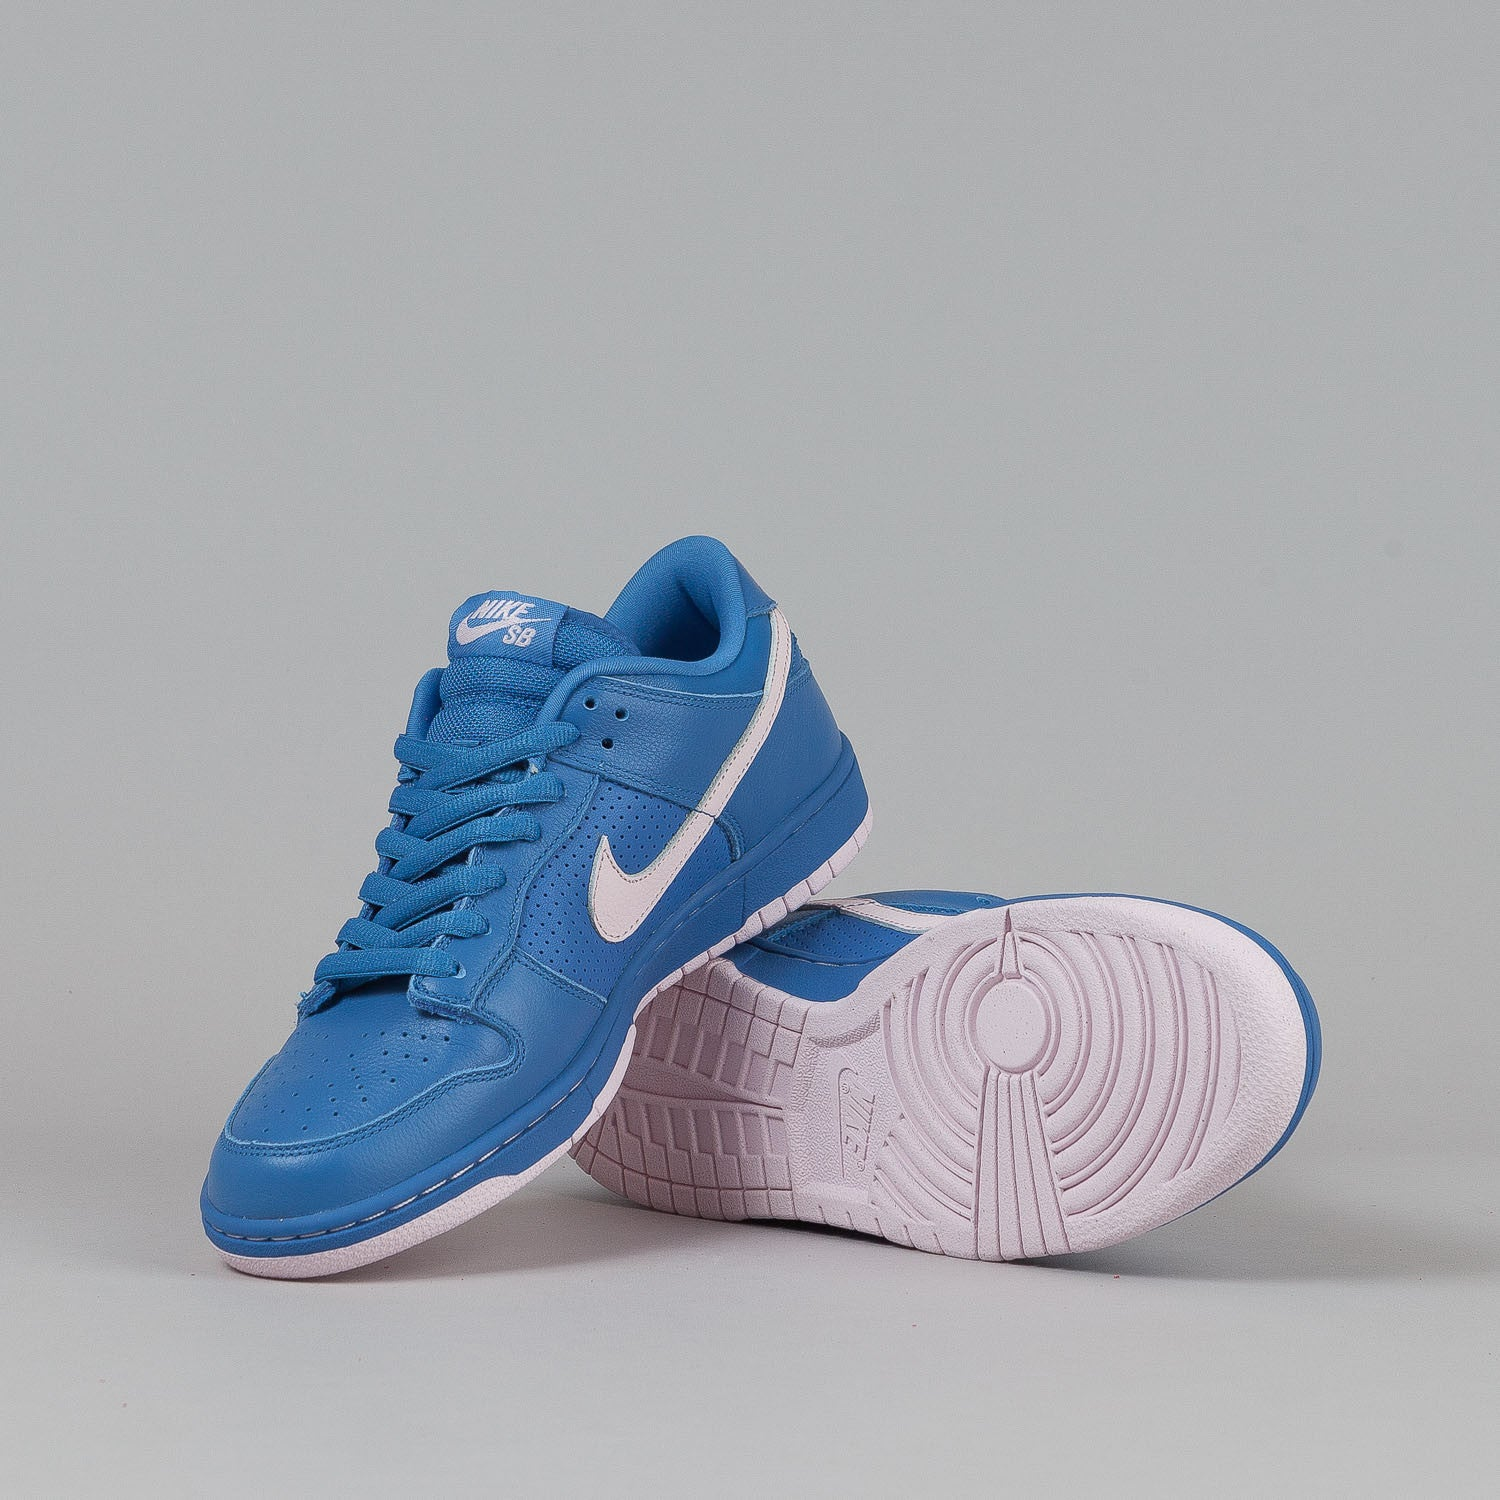 Nike SB Dunk Low Premium Shoes - Varsity Blue / Pink Ice